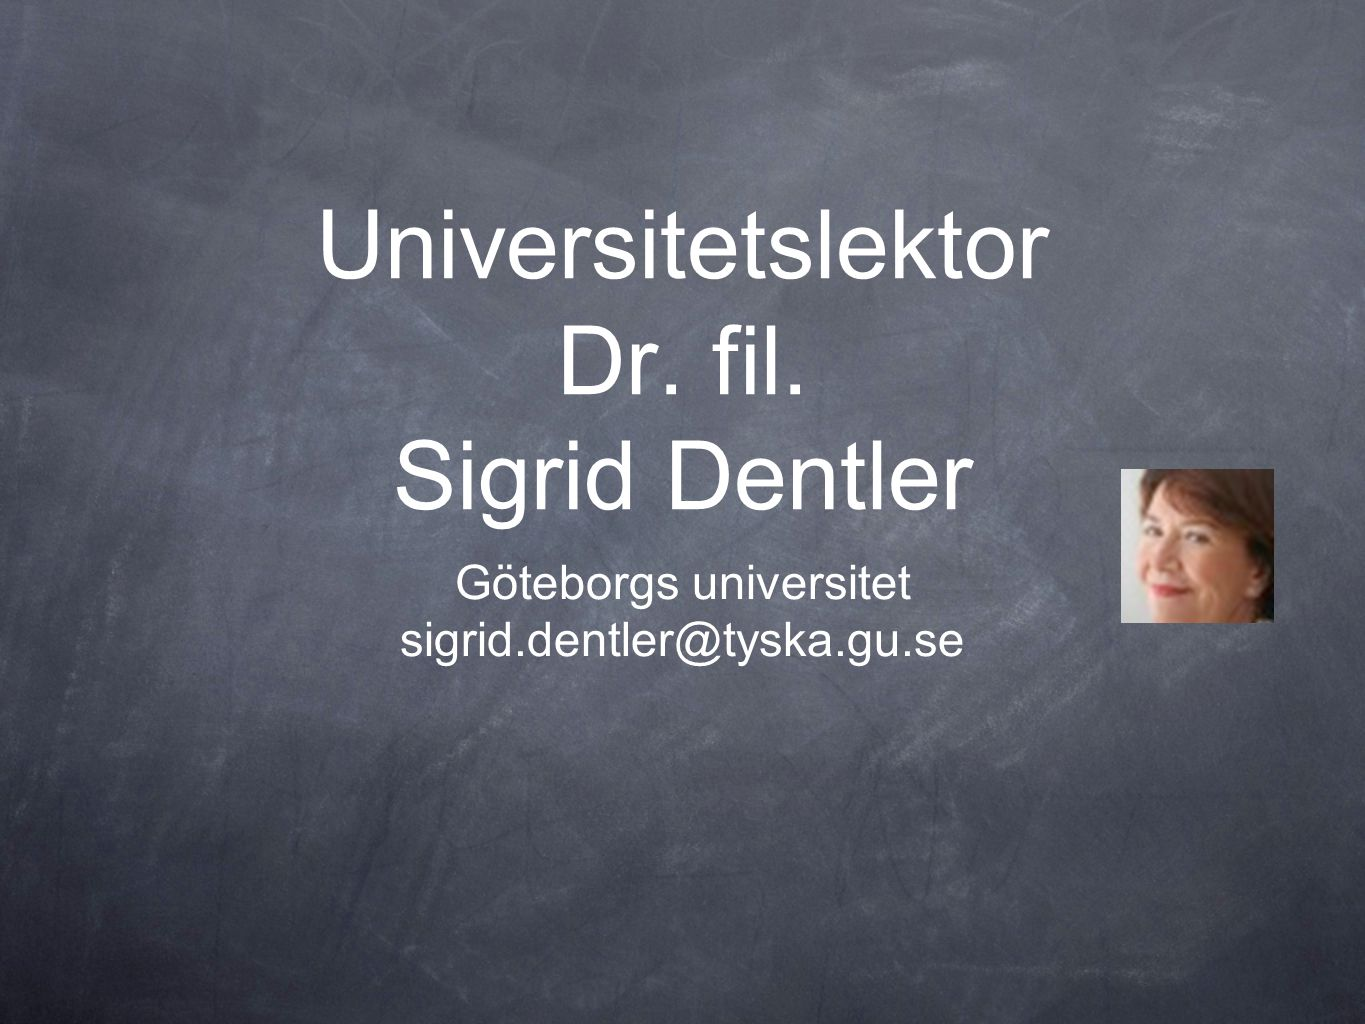 Universitetslektor Dr. fil. Sigrid Dentler